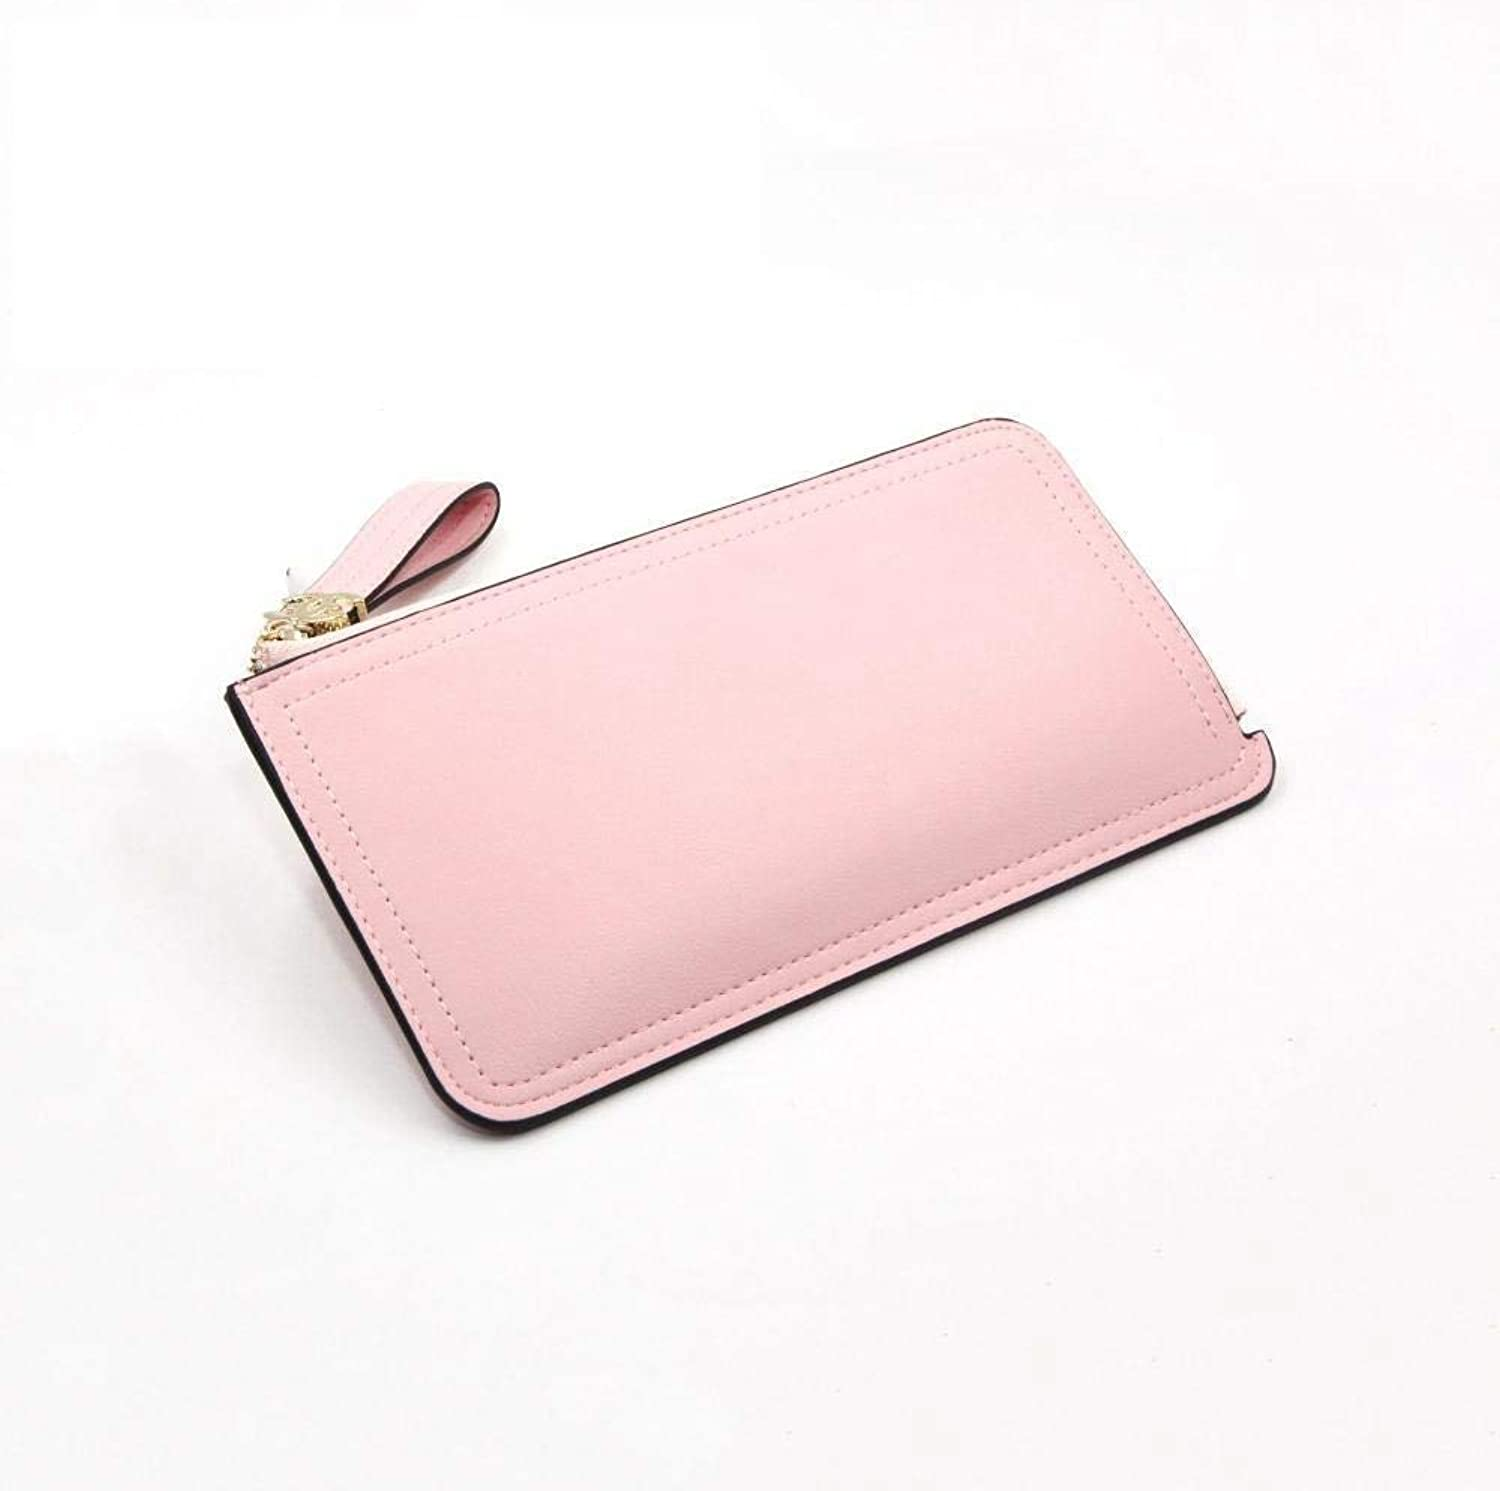 Girls Purse Women's Wallet,Lady's Large Wallet Zipper Big Capacity Wallet PU Leather (color   A)